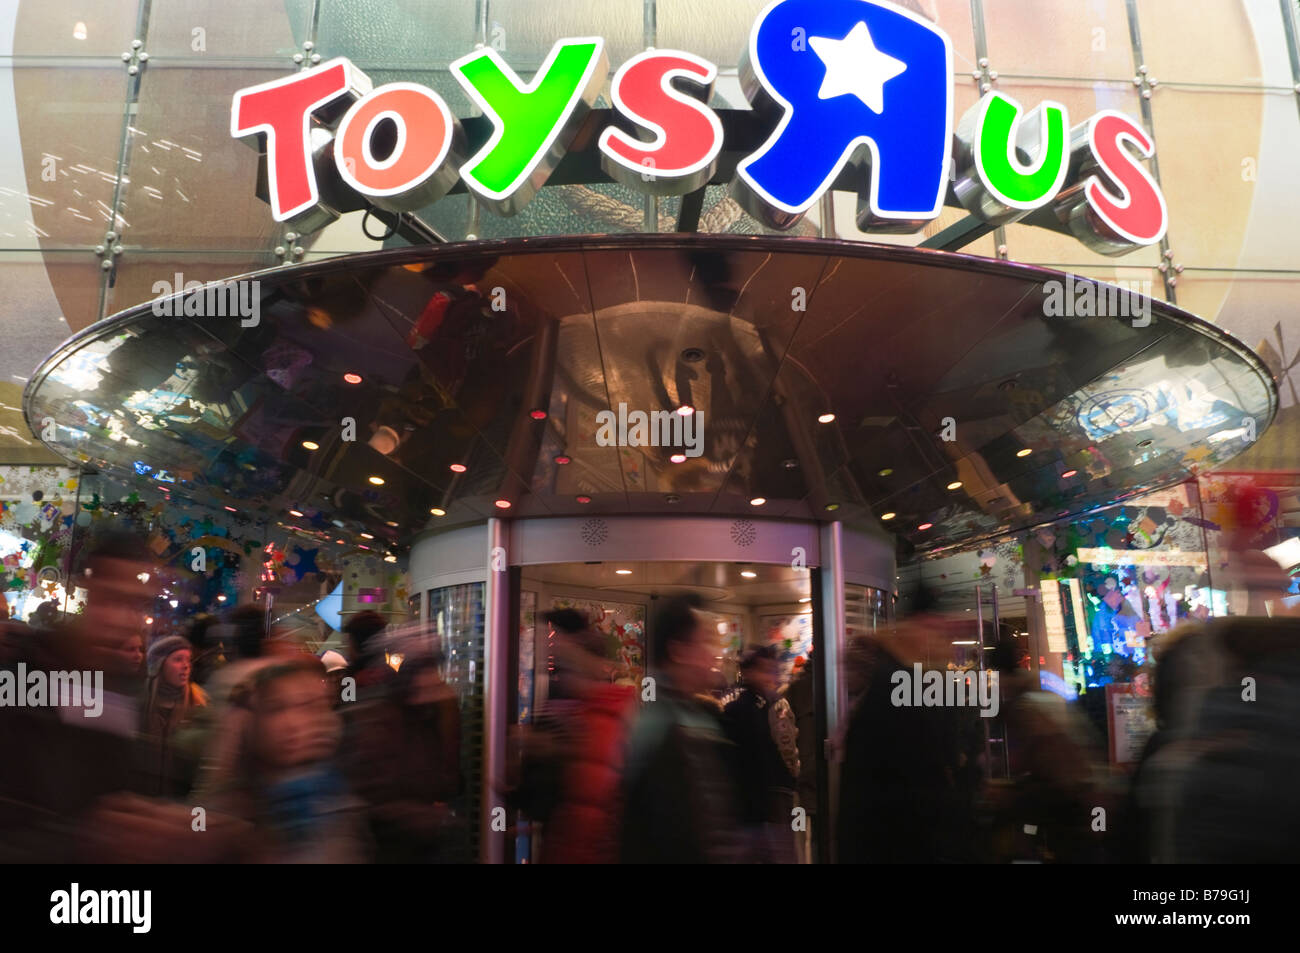 New York NY 19 December 2008 Christmas shoppers outside the Times Square Toys R Us ©Stacy Walsh Rosenstock/Alamy - Stock Image